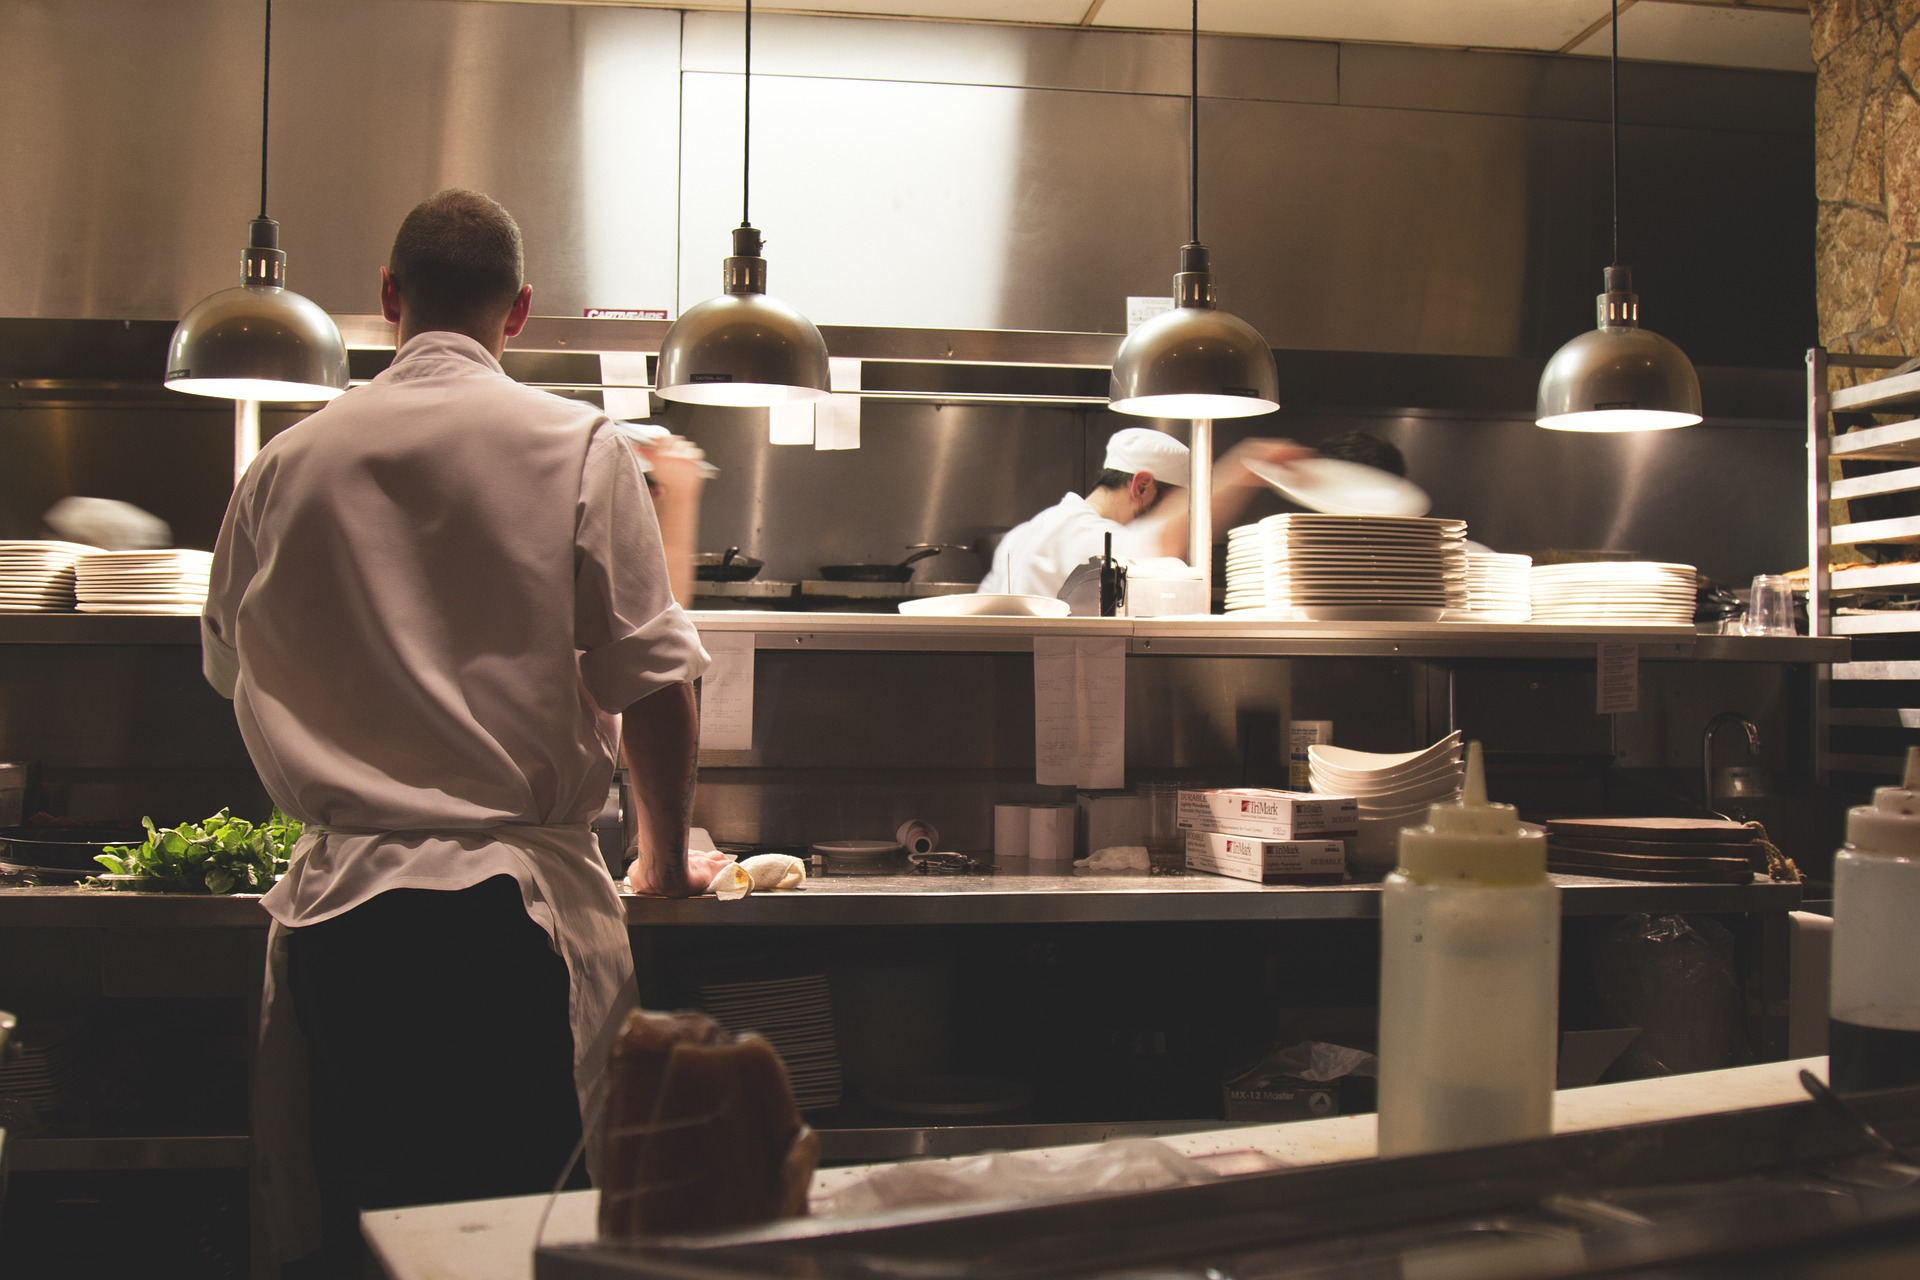 Dark Kitchens and Virtual Restaurants:The Future of the Food Industry?